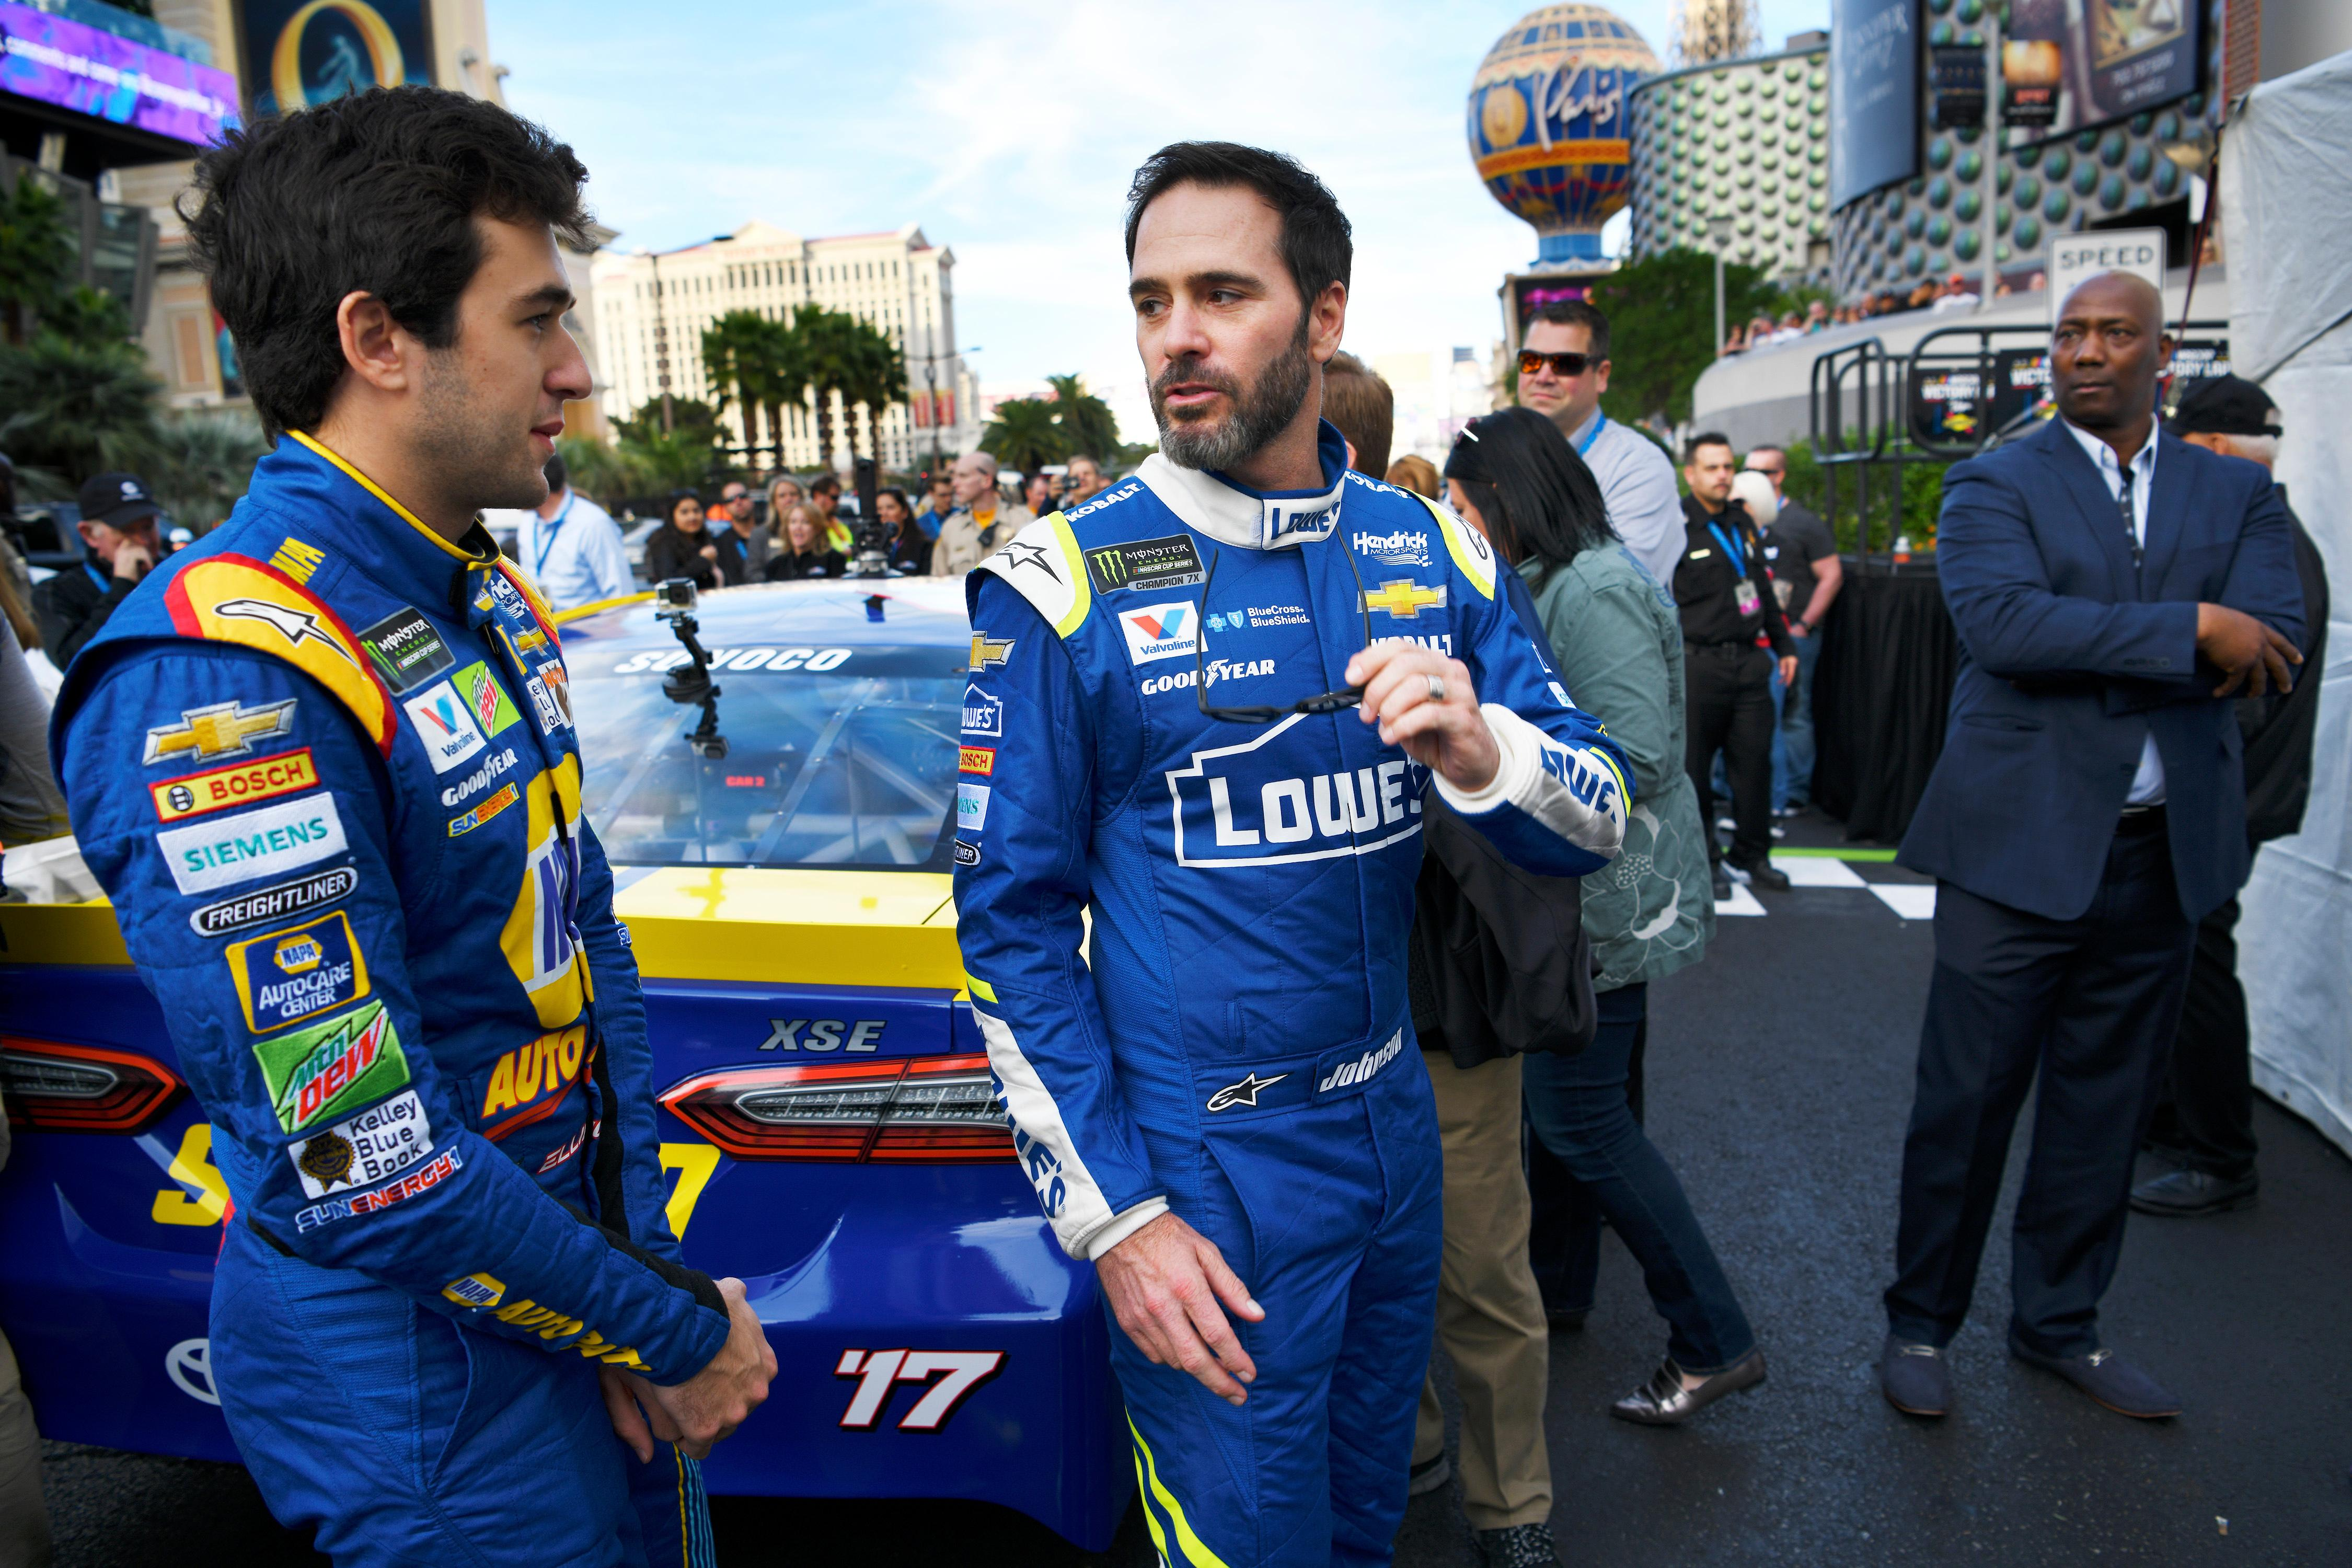 Monster Energy NASCAR Cup Series driver Jimmie Johnson, right, talks with Monster Energy NASCAR Cup Series driver Chase Elliott during the NASCAR Victory Lap on the Las Vegas Strip being held as part of Champions Week Wednesday, November 29, 2017. CREDIT: Sam Morris/Las Vegas News Bureau